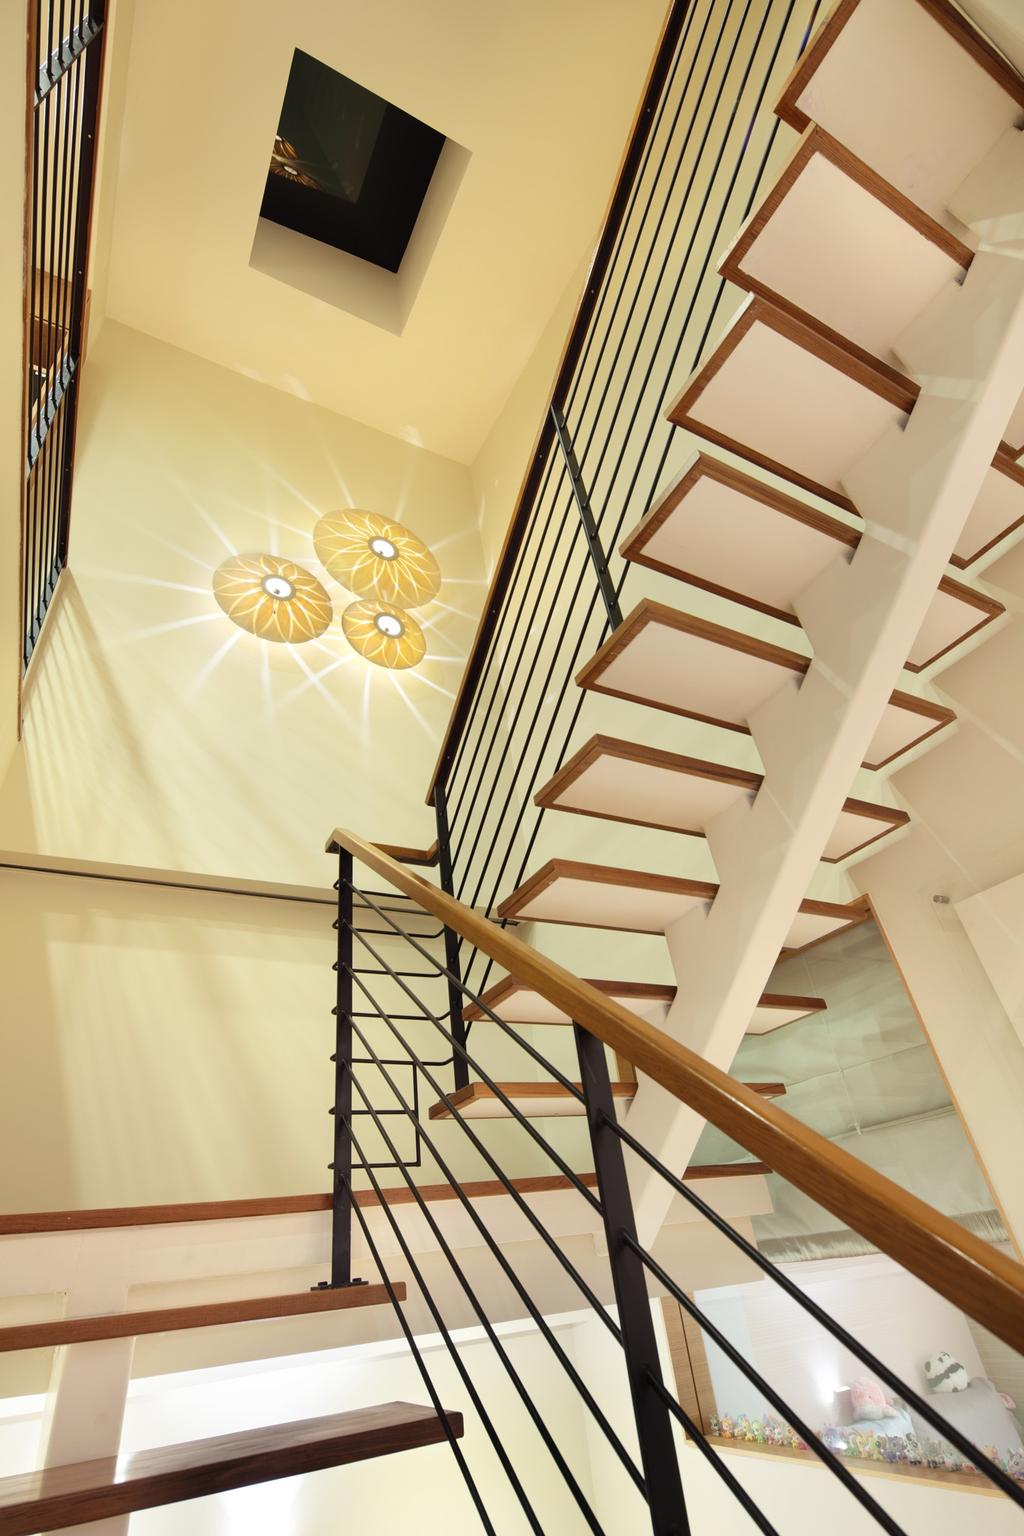 Traditional, Landed, 22 Sunbird Road, Interior Designer, Space Define Interior, Railing, Stairs, Staircase, Handrails, High Ceiling, Wall Lamp, Wall Art, Banister, Handrail